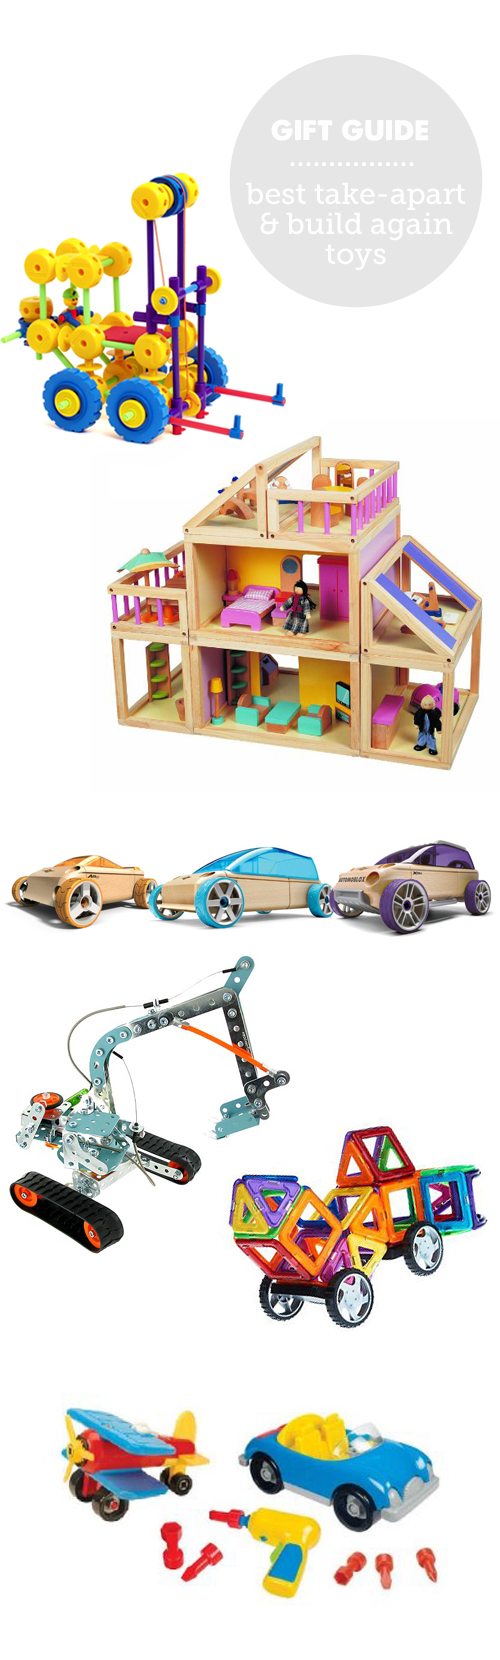 Best take-apart and build again toys for hours of independent play